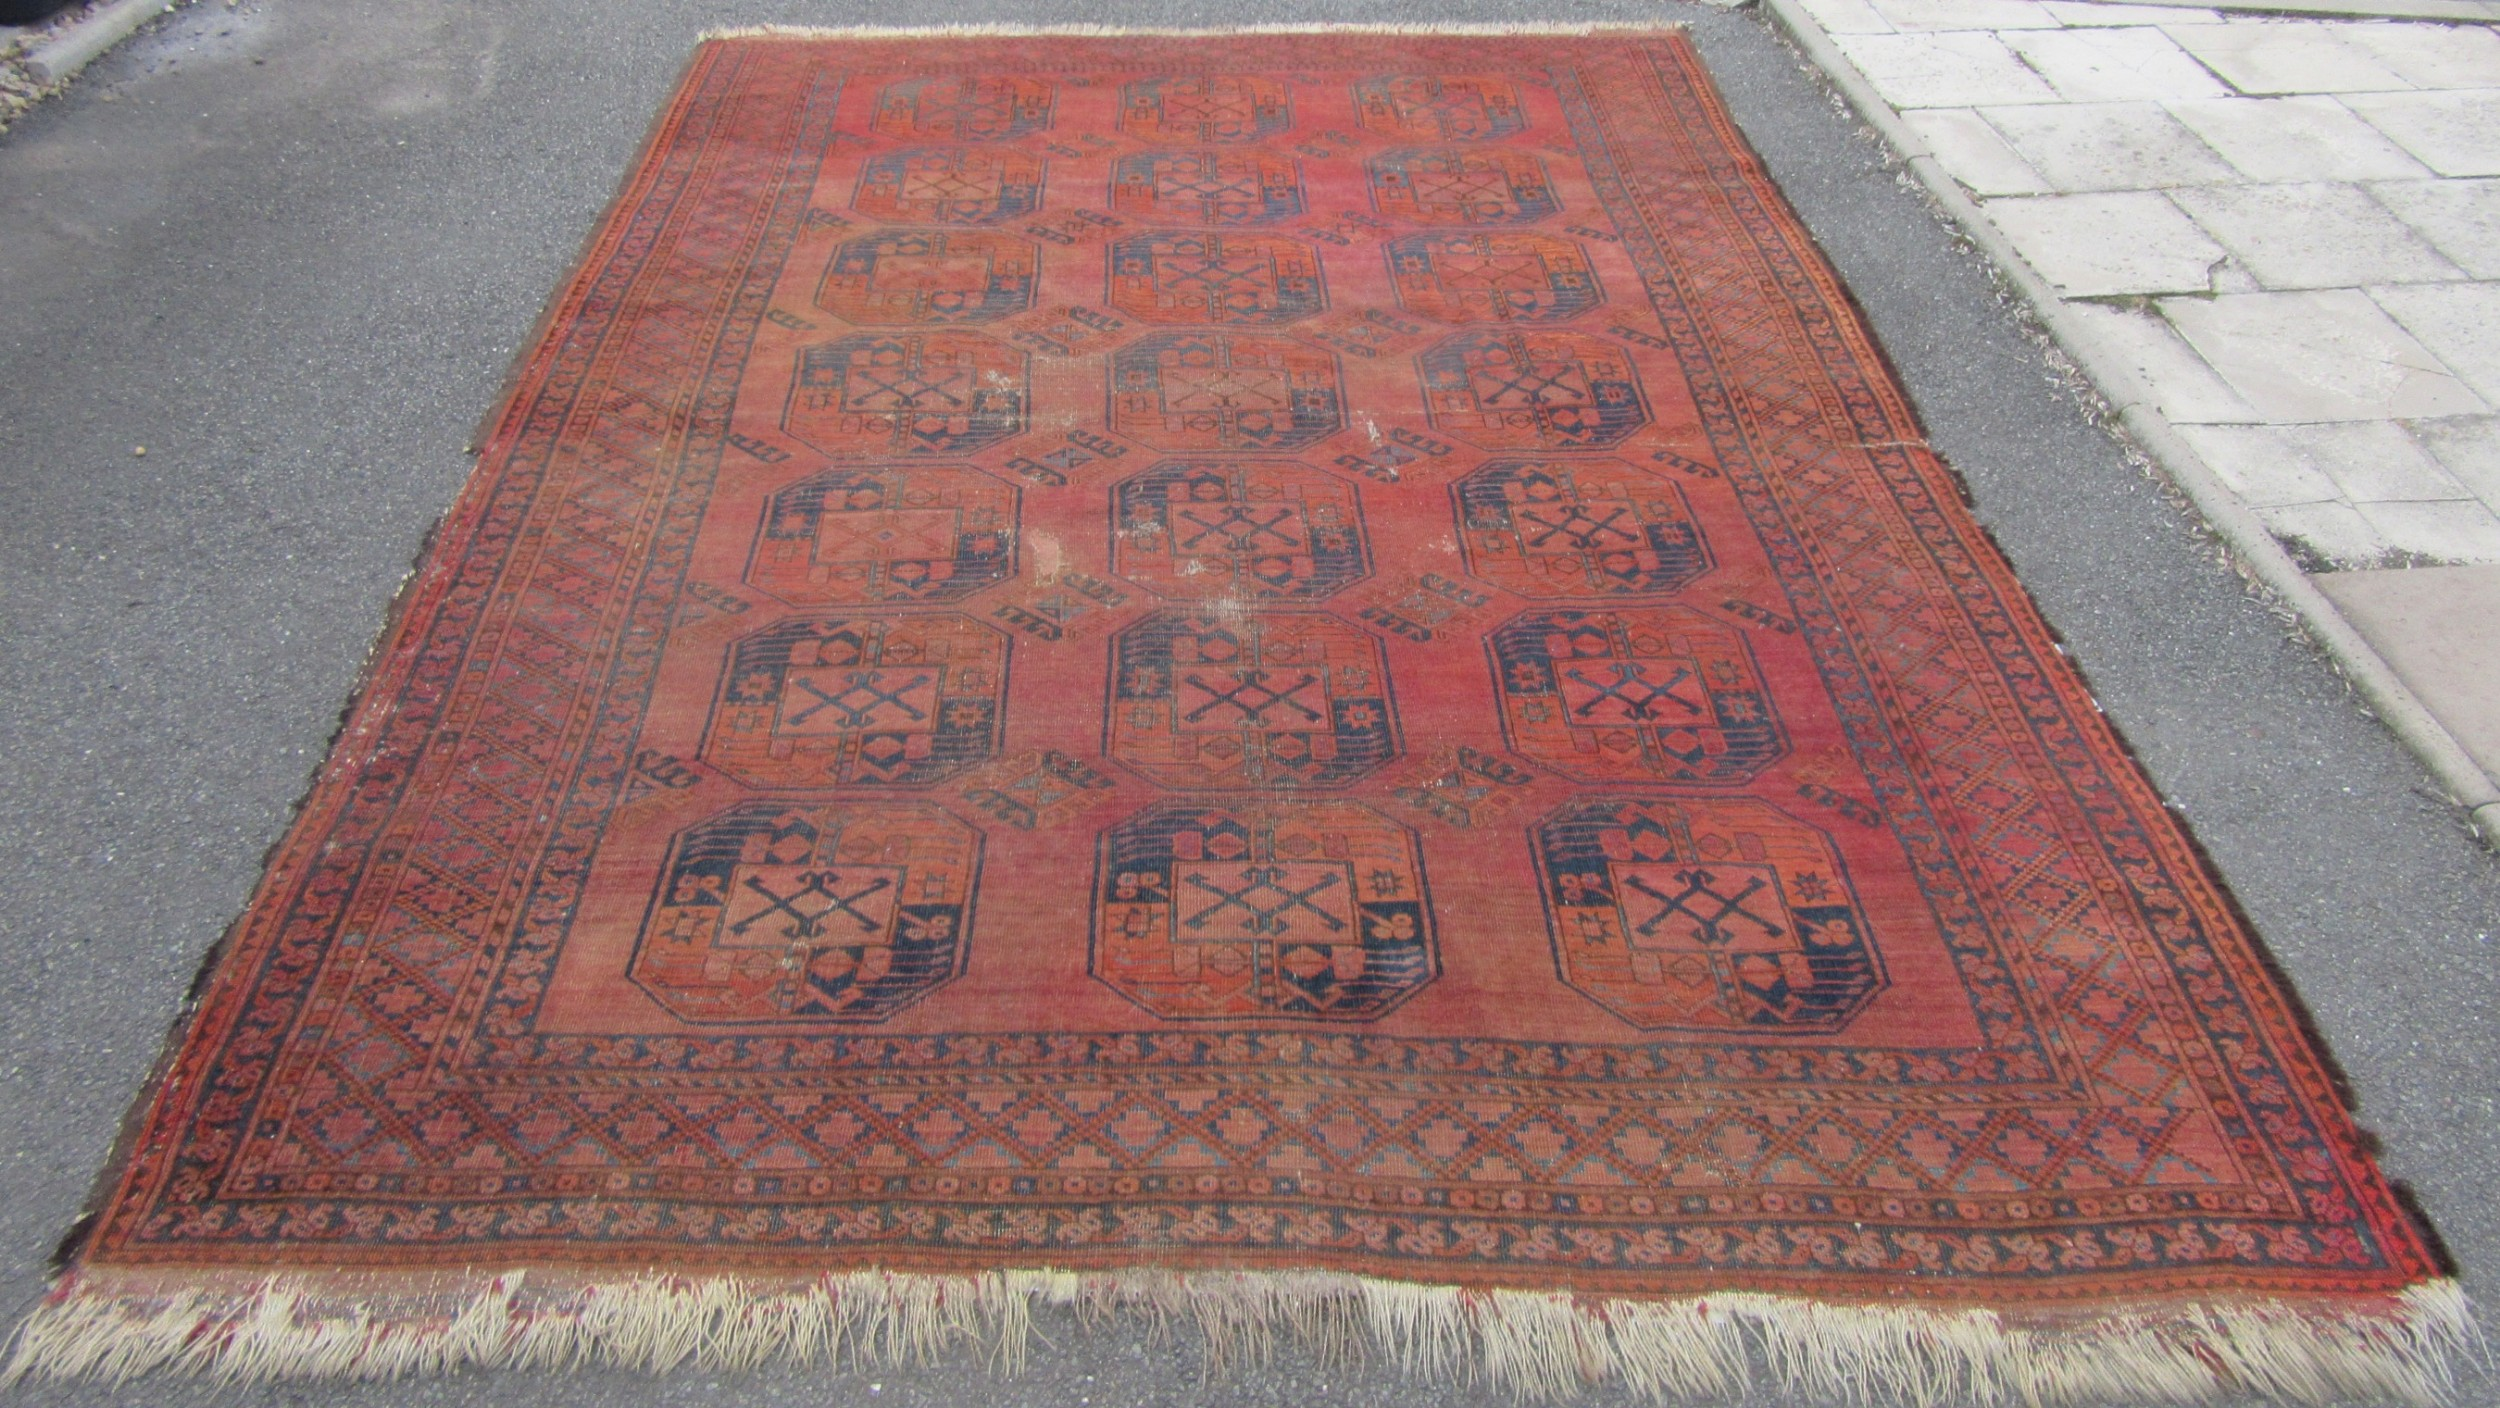 antique country house shabby chic afghan ersari main carpet 2nd half 19th century